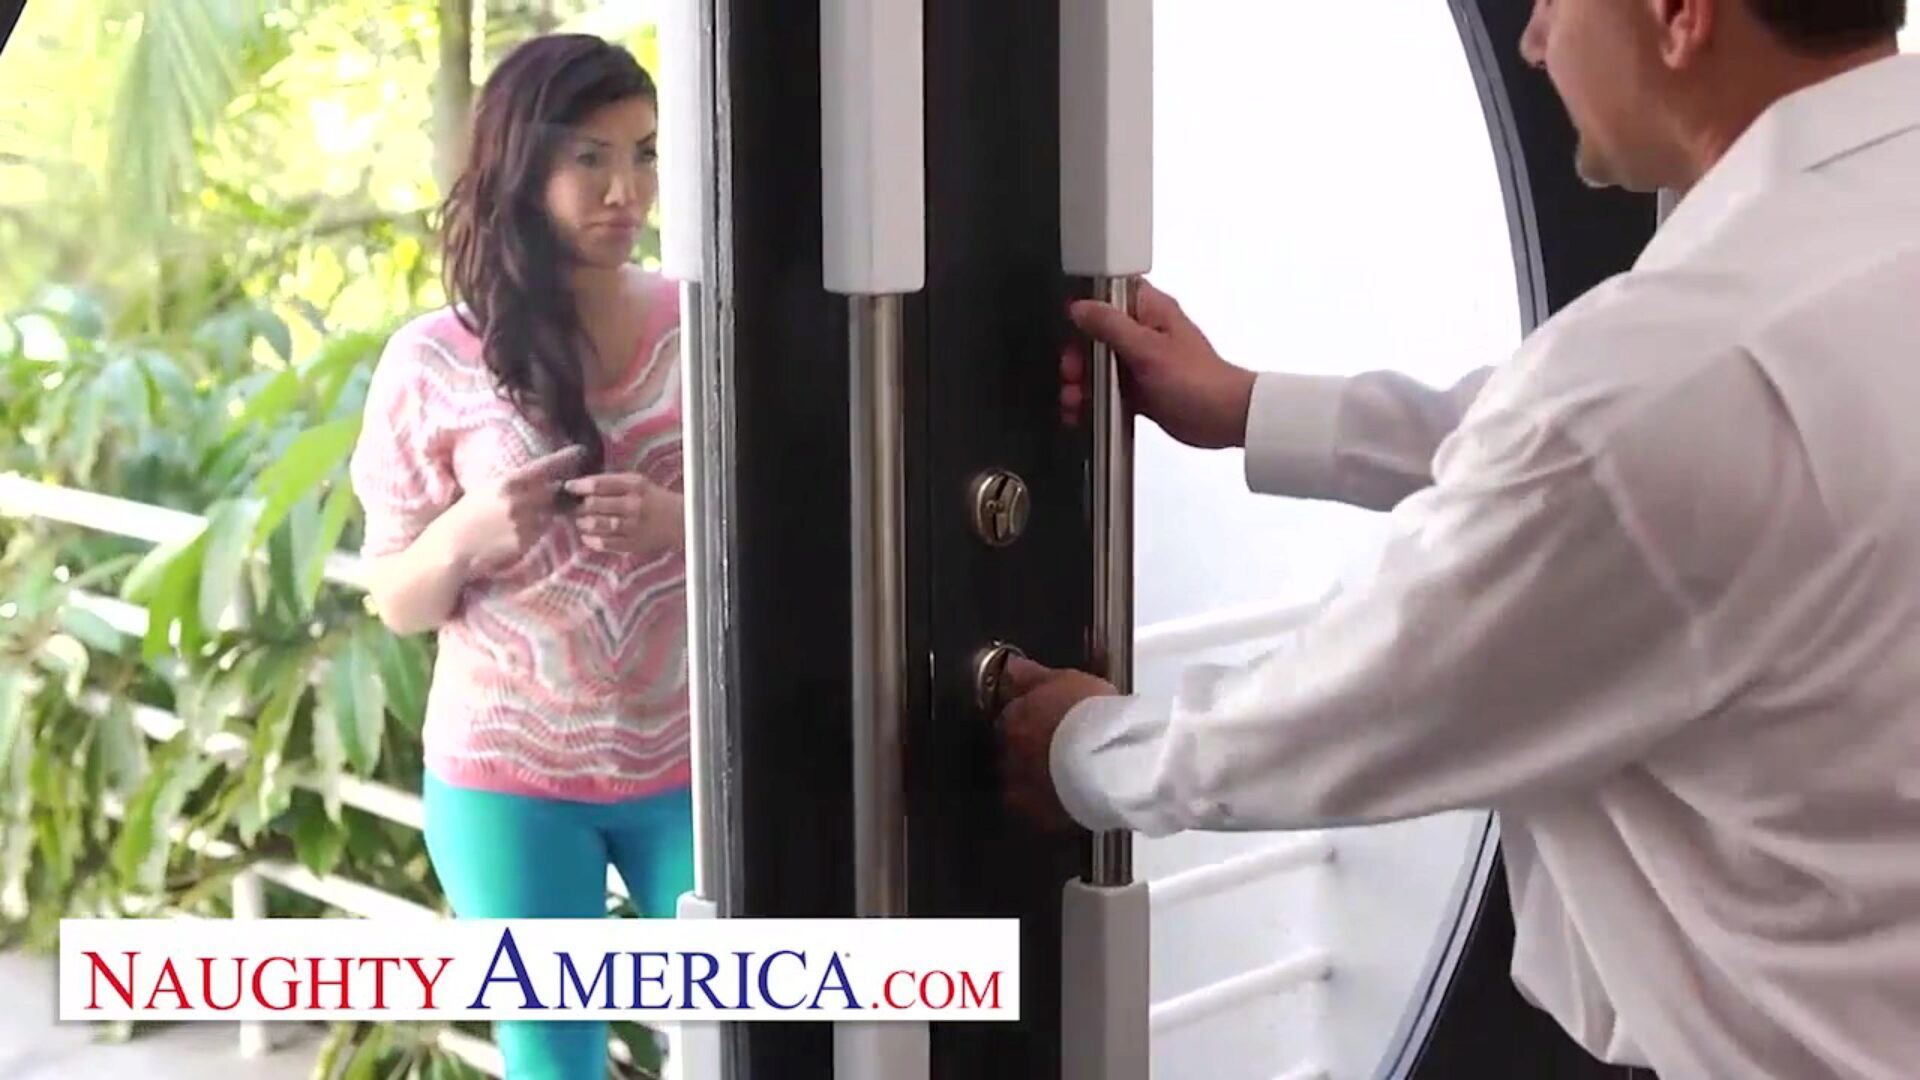 Naughty America London Keyes visits her sugardaddy for his pleasure